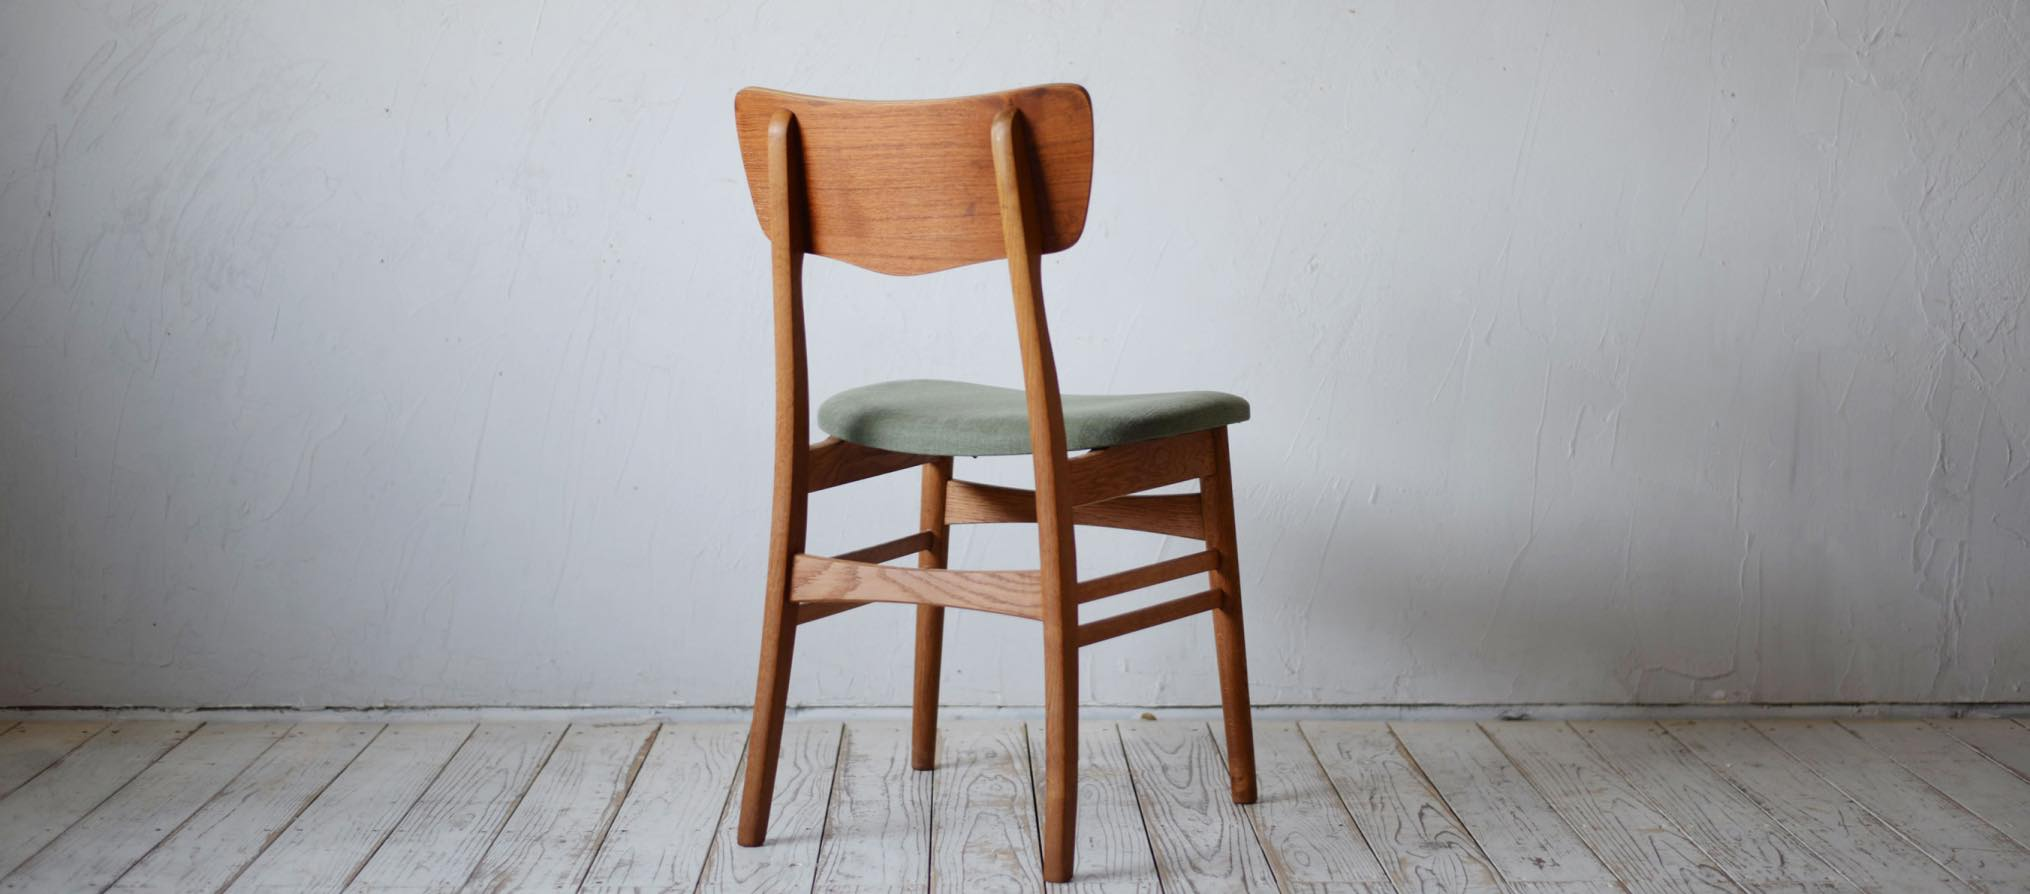 Dining Chair D-R204D343A_デザイン